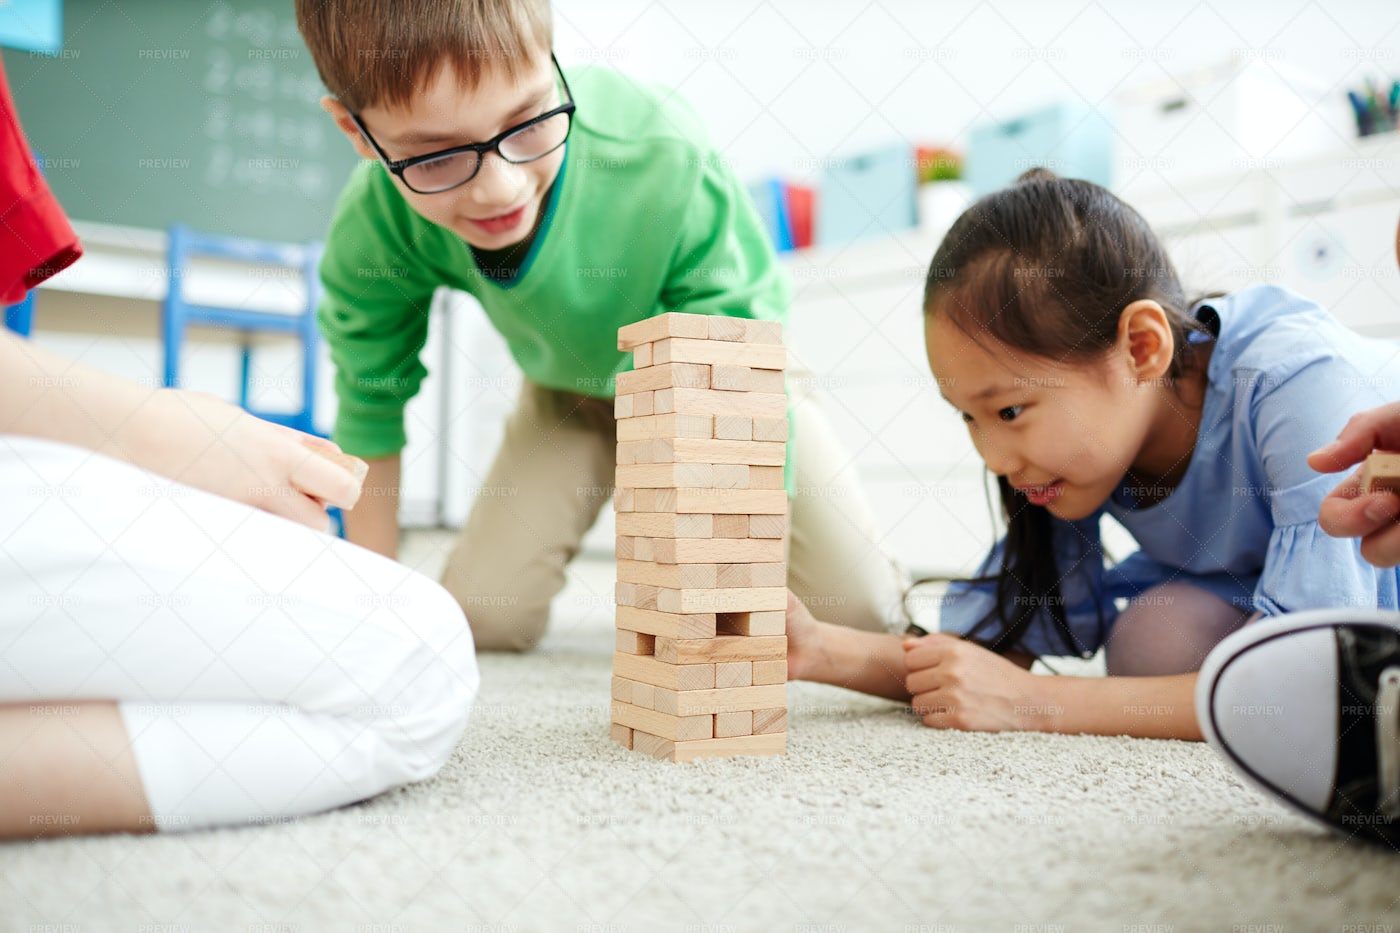 Children Playing With Wooden Tower: Stock Photos